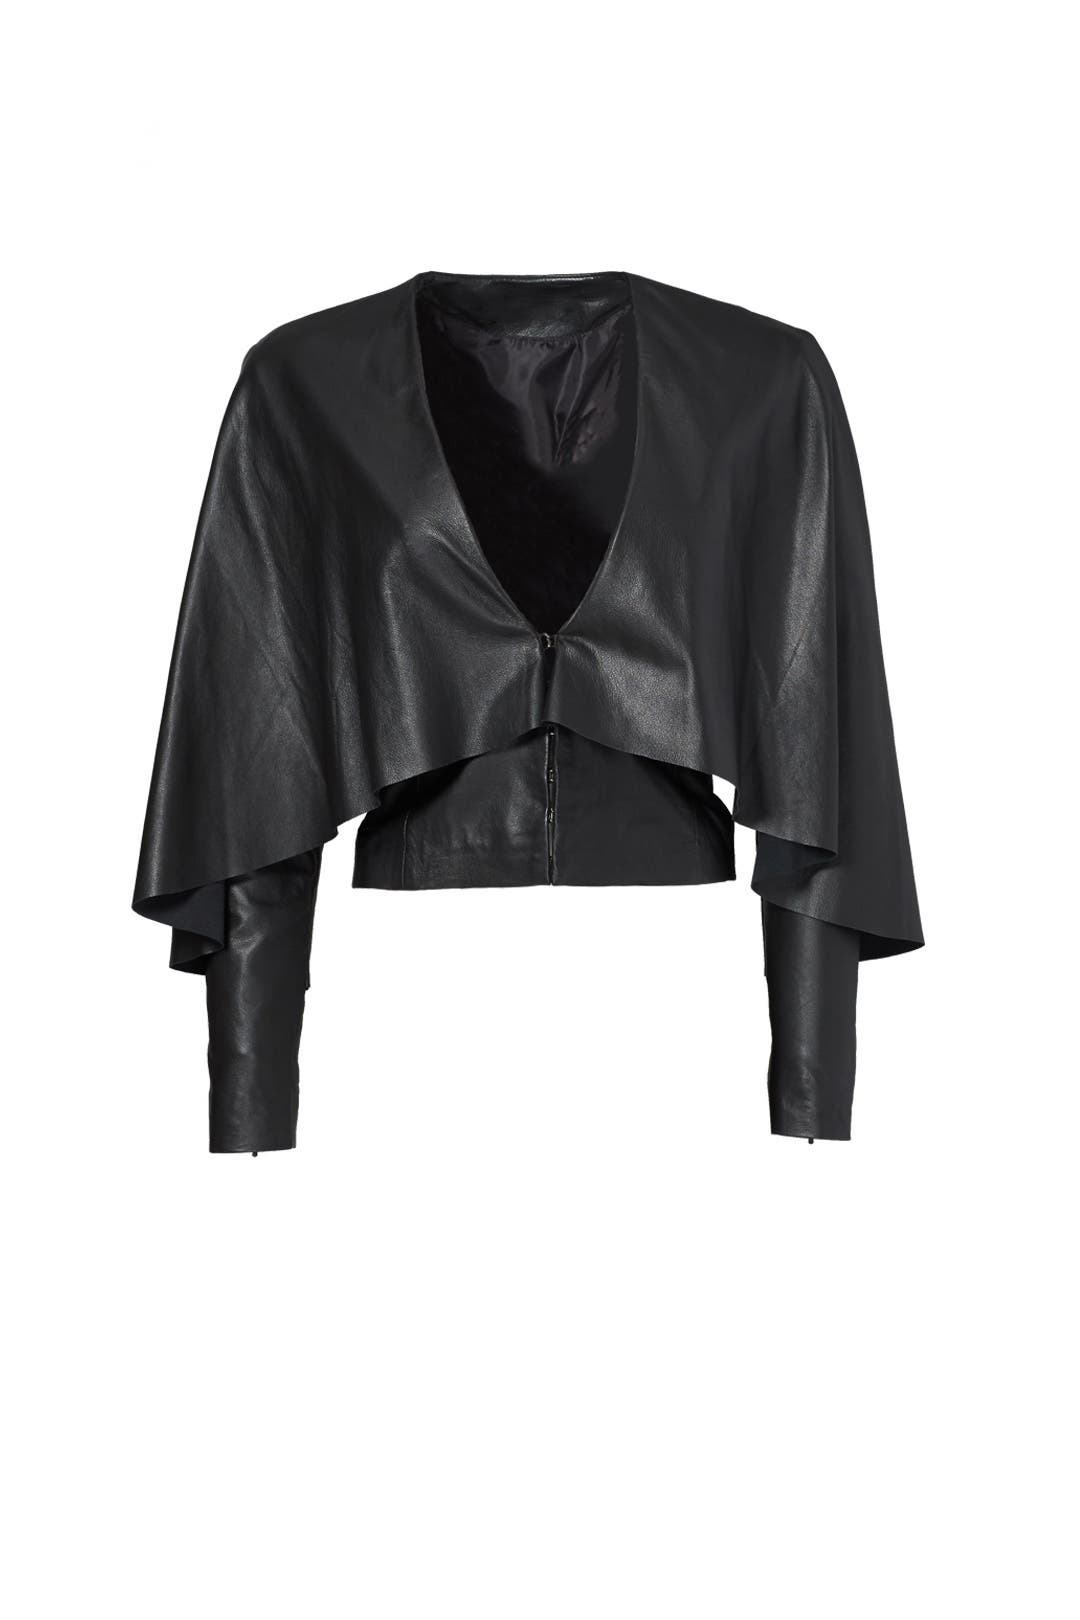 Black Leather Cape Jacket by Asilio for $98 | Rent the Runway